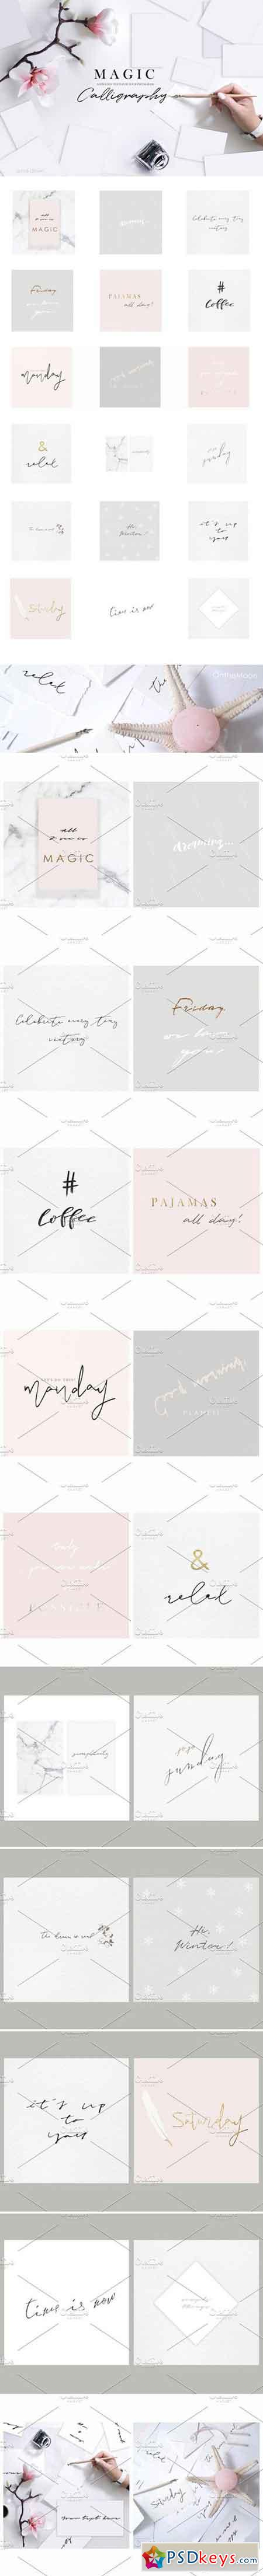 ANIMATED HANDWRITTEN QUOTES 2056790